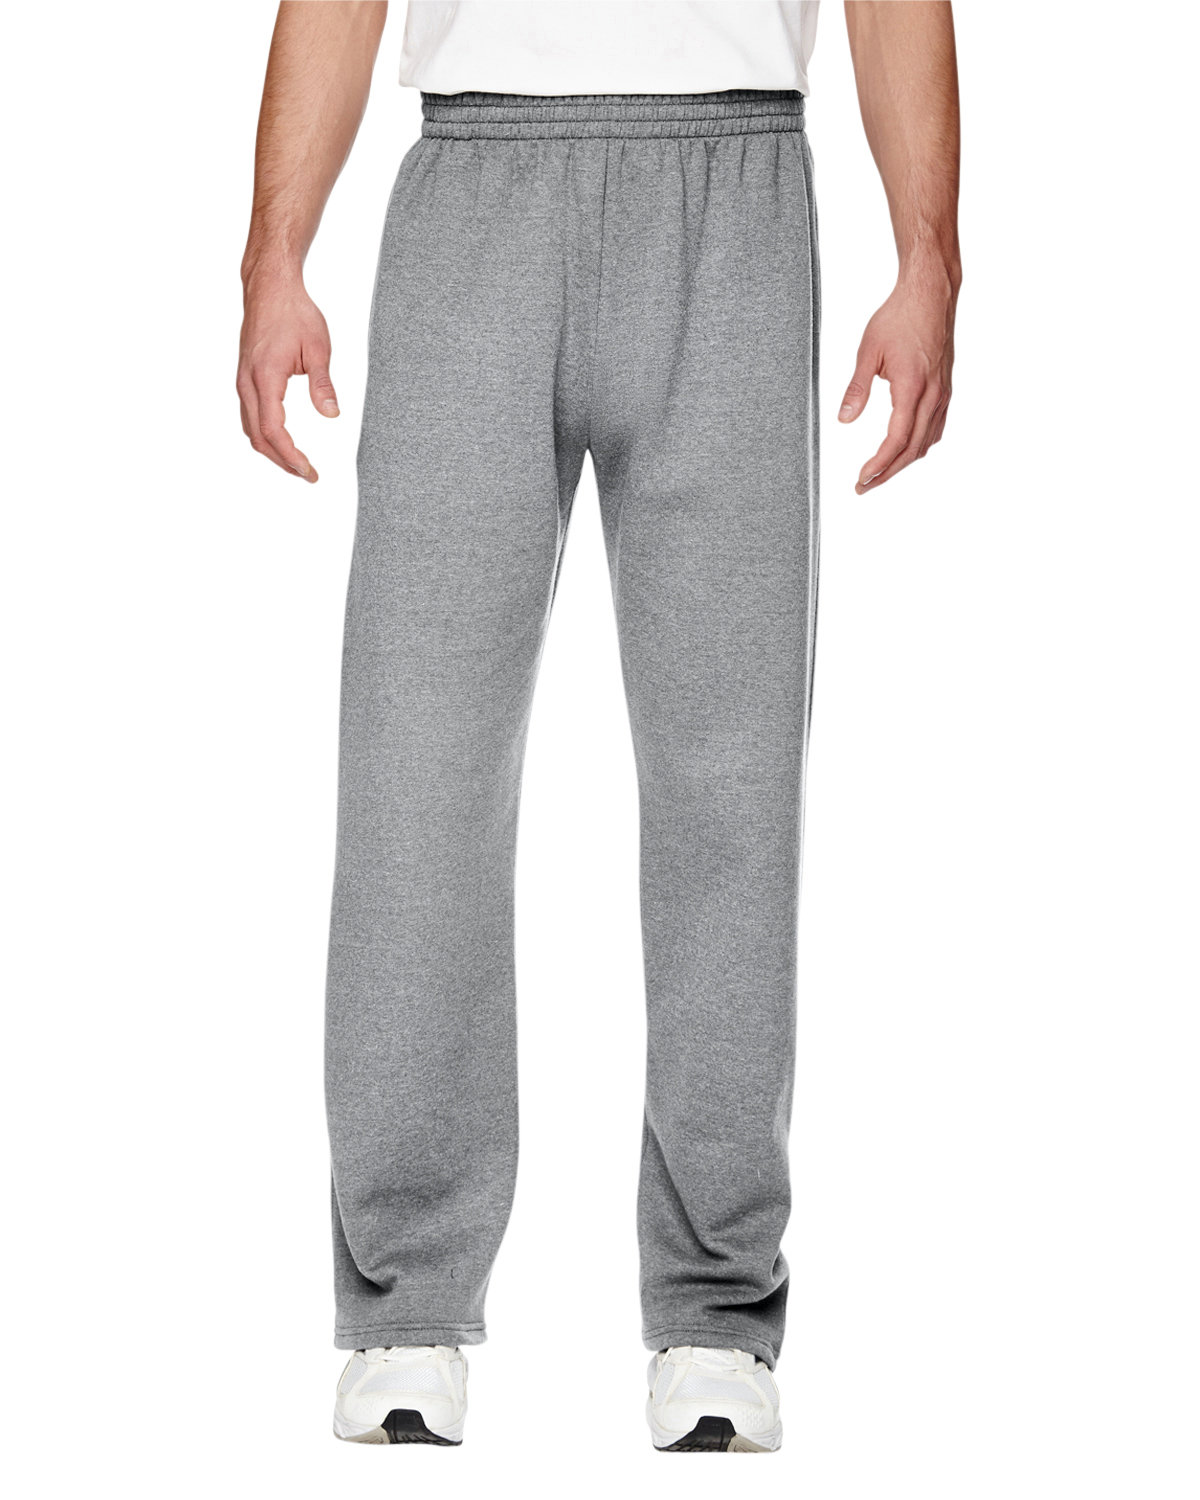 Adult 7.2 oz. SofSpun® Open-Bottom Pocket Sweatpants